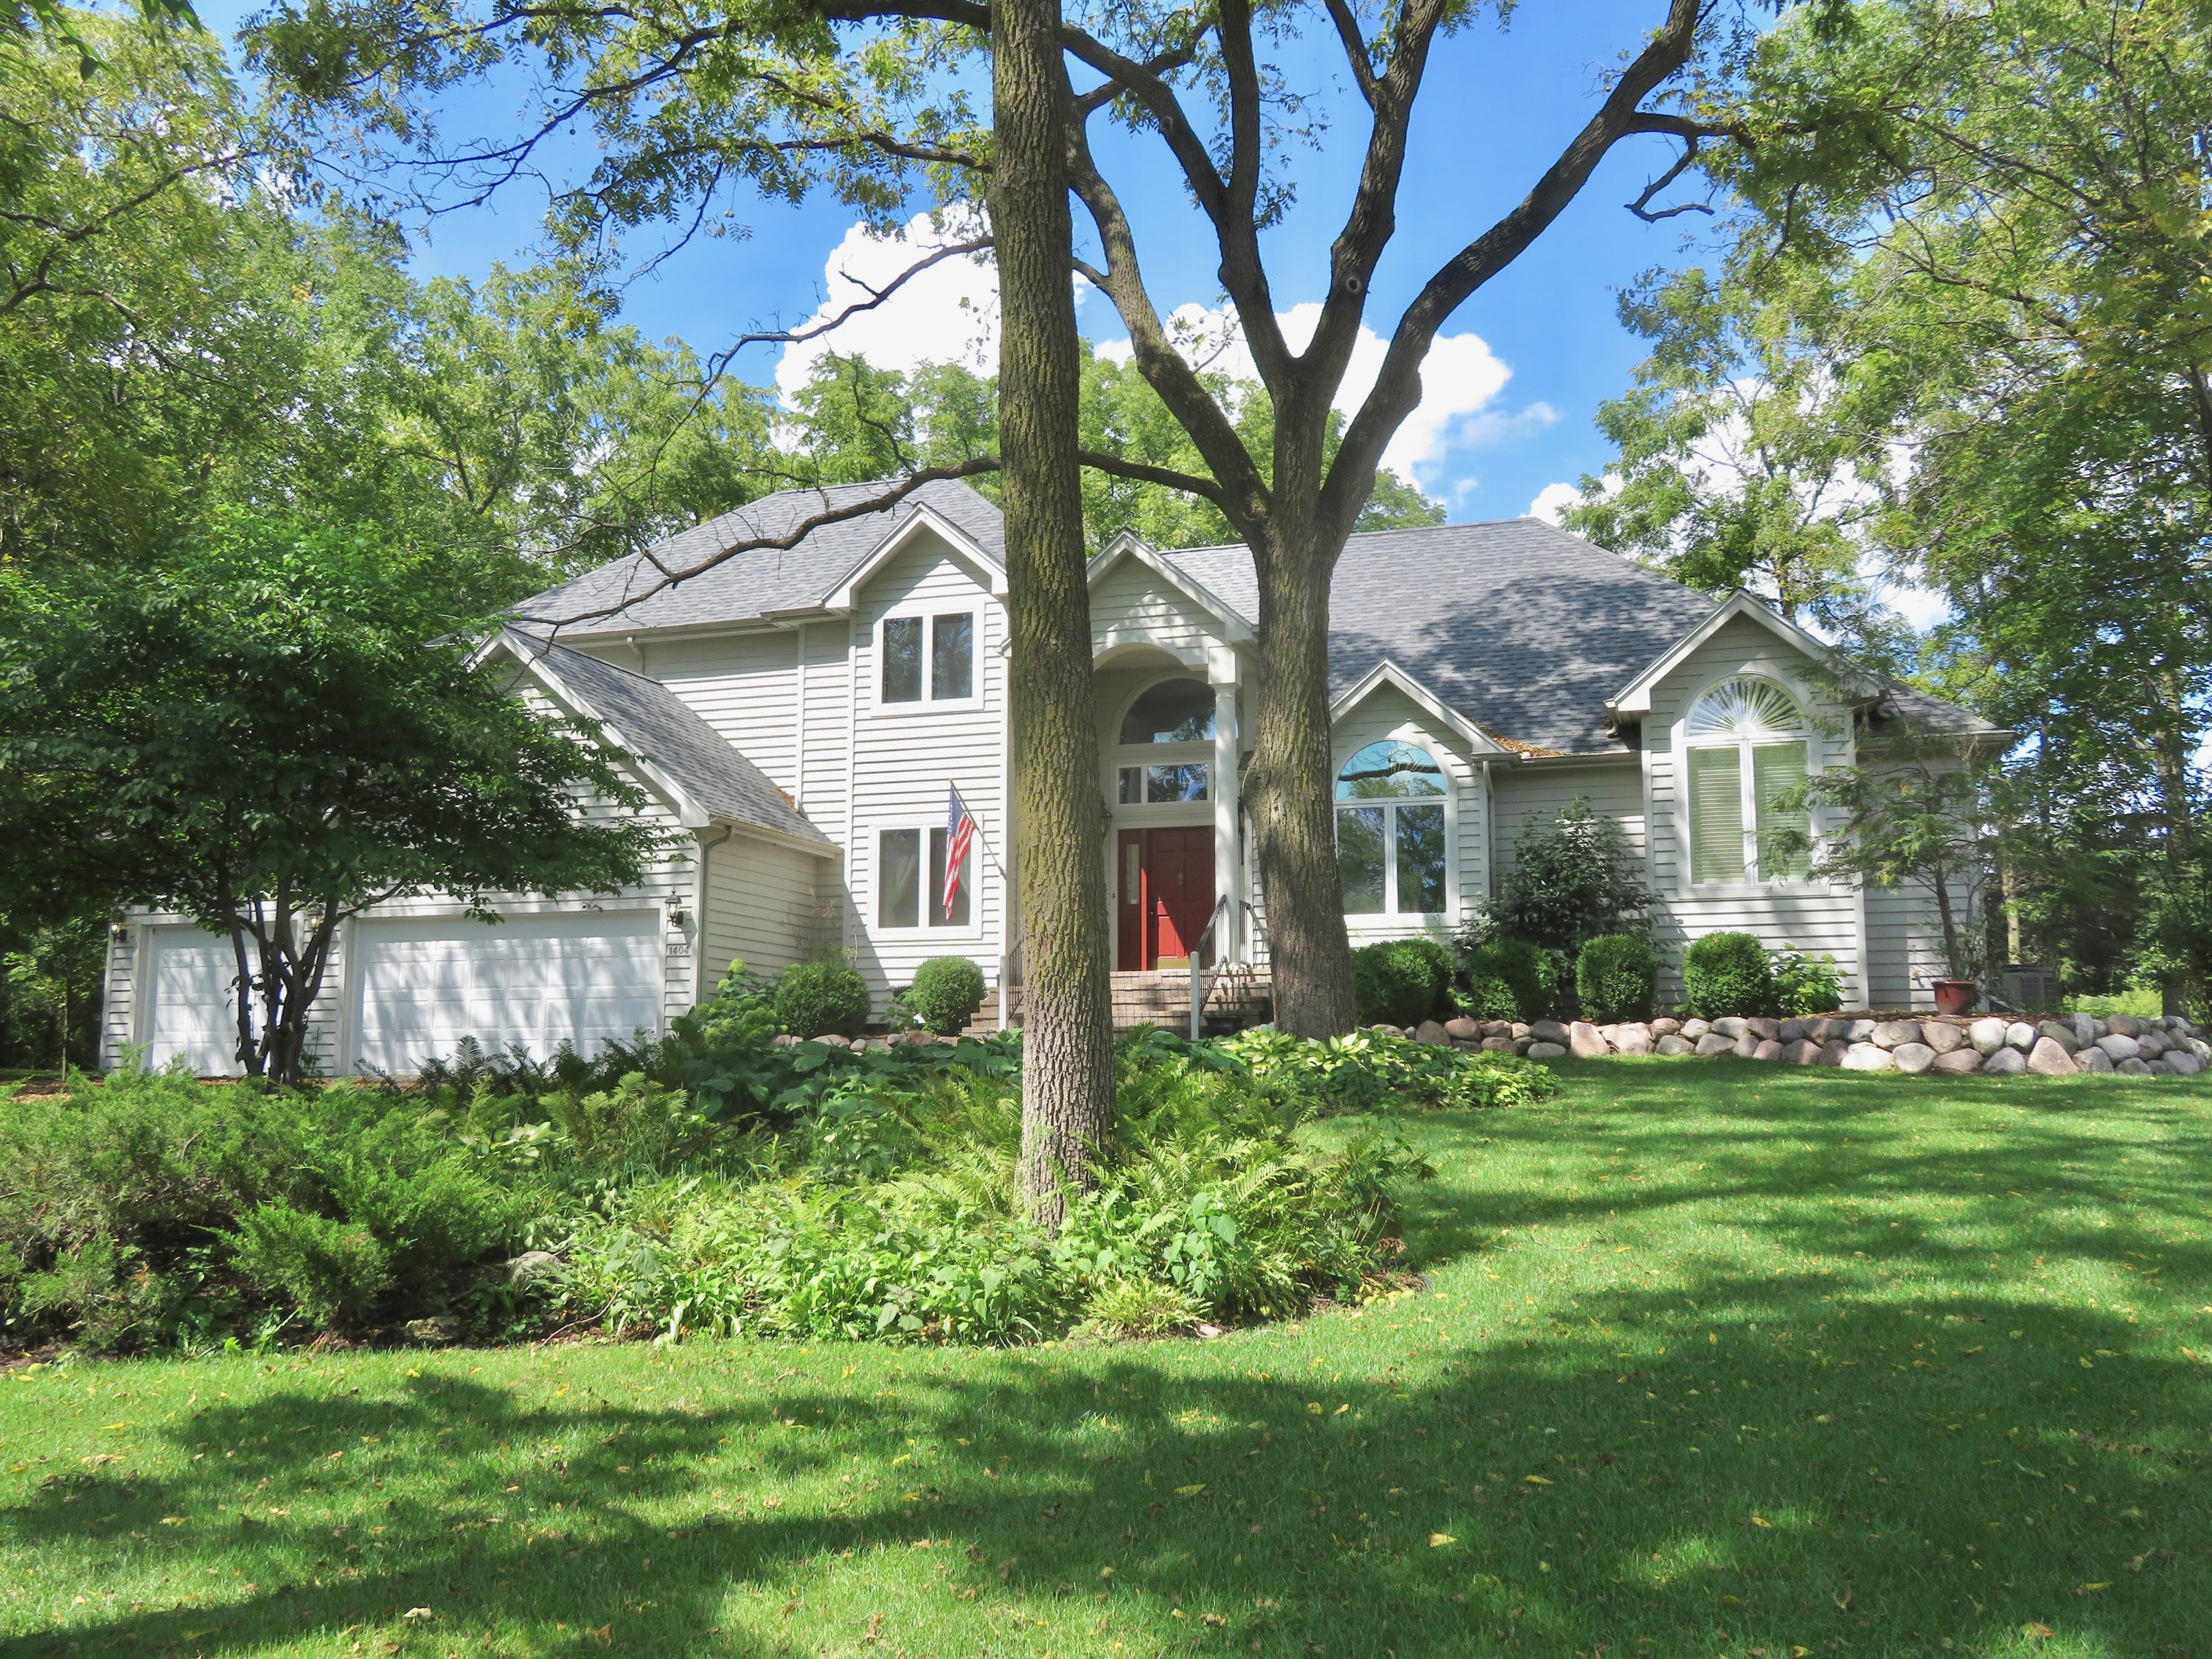 Search Houses & Condos - The Rauland Agency